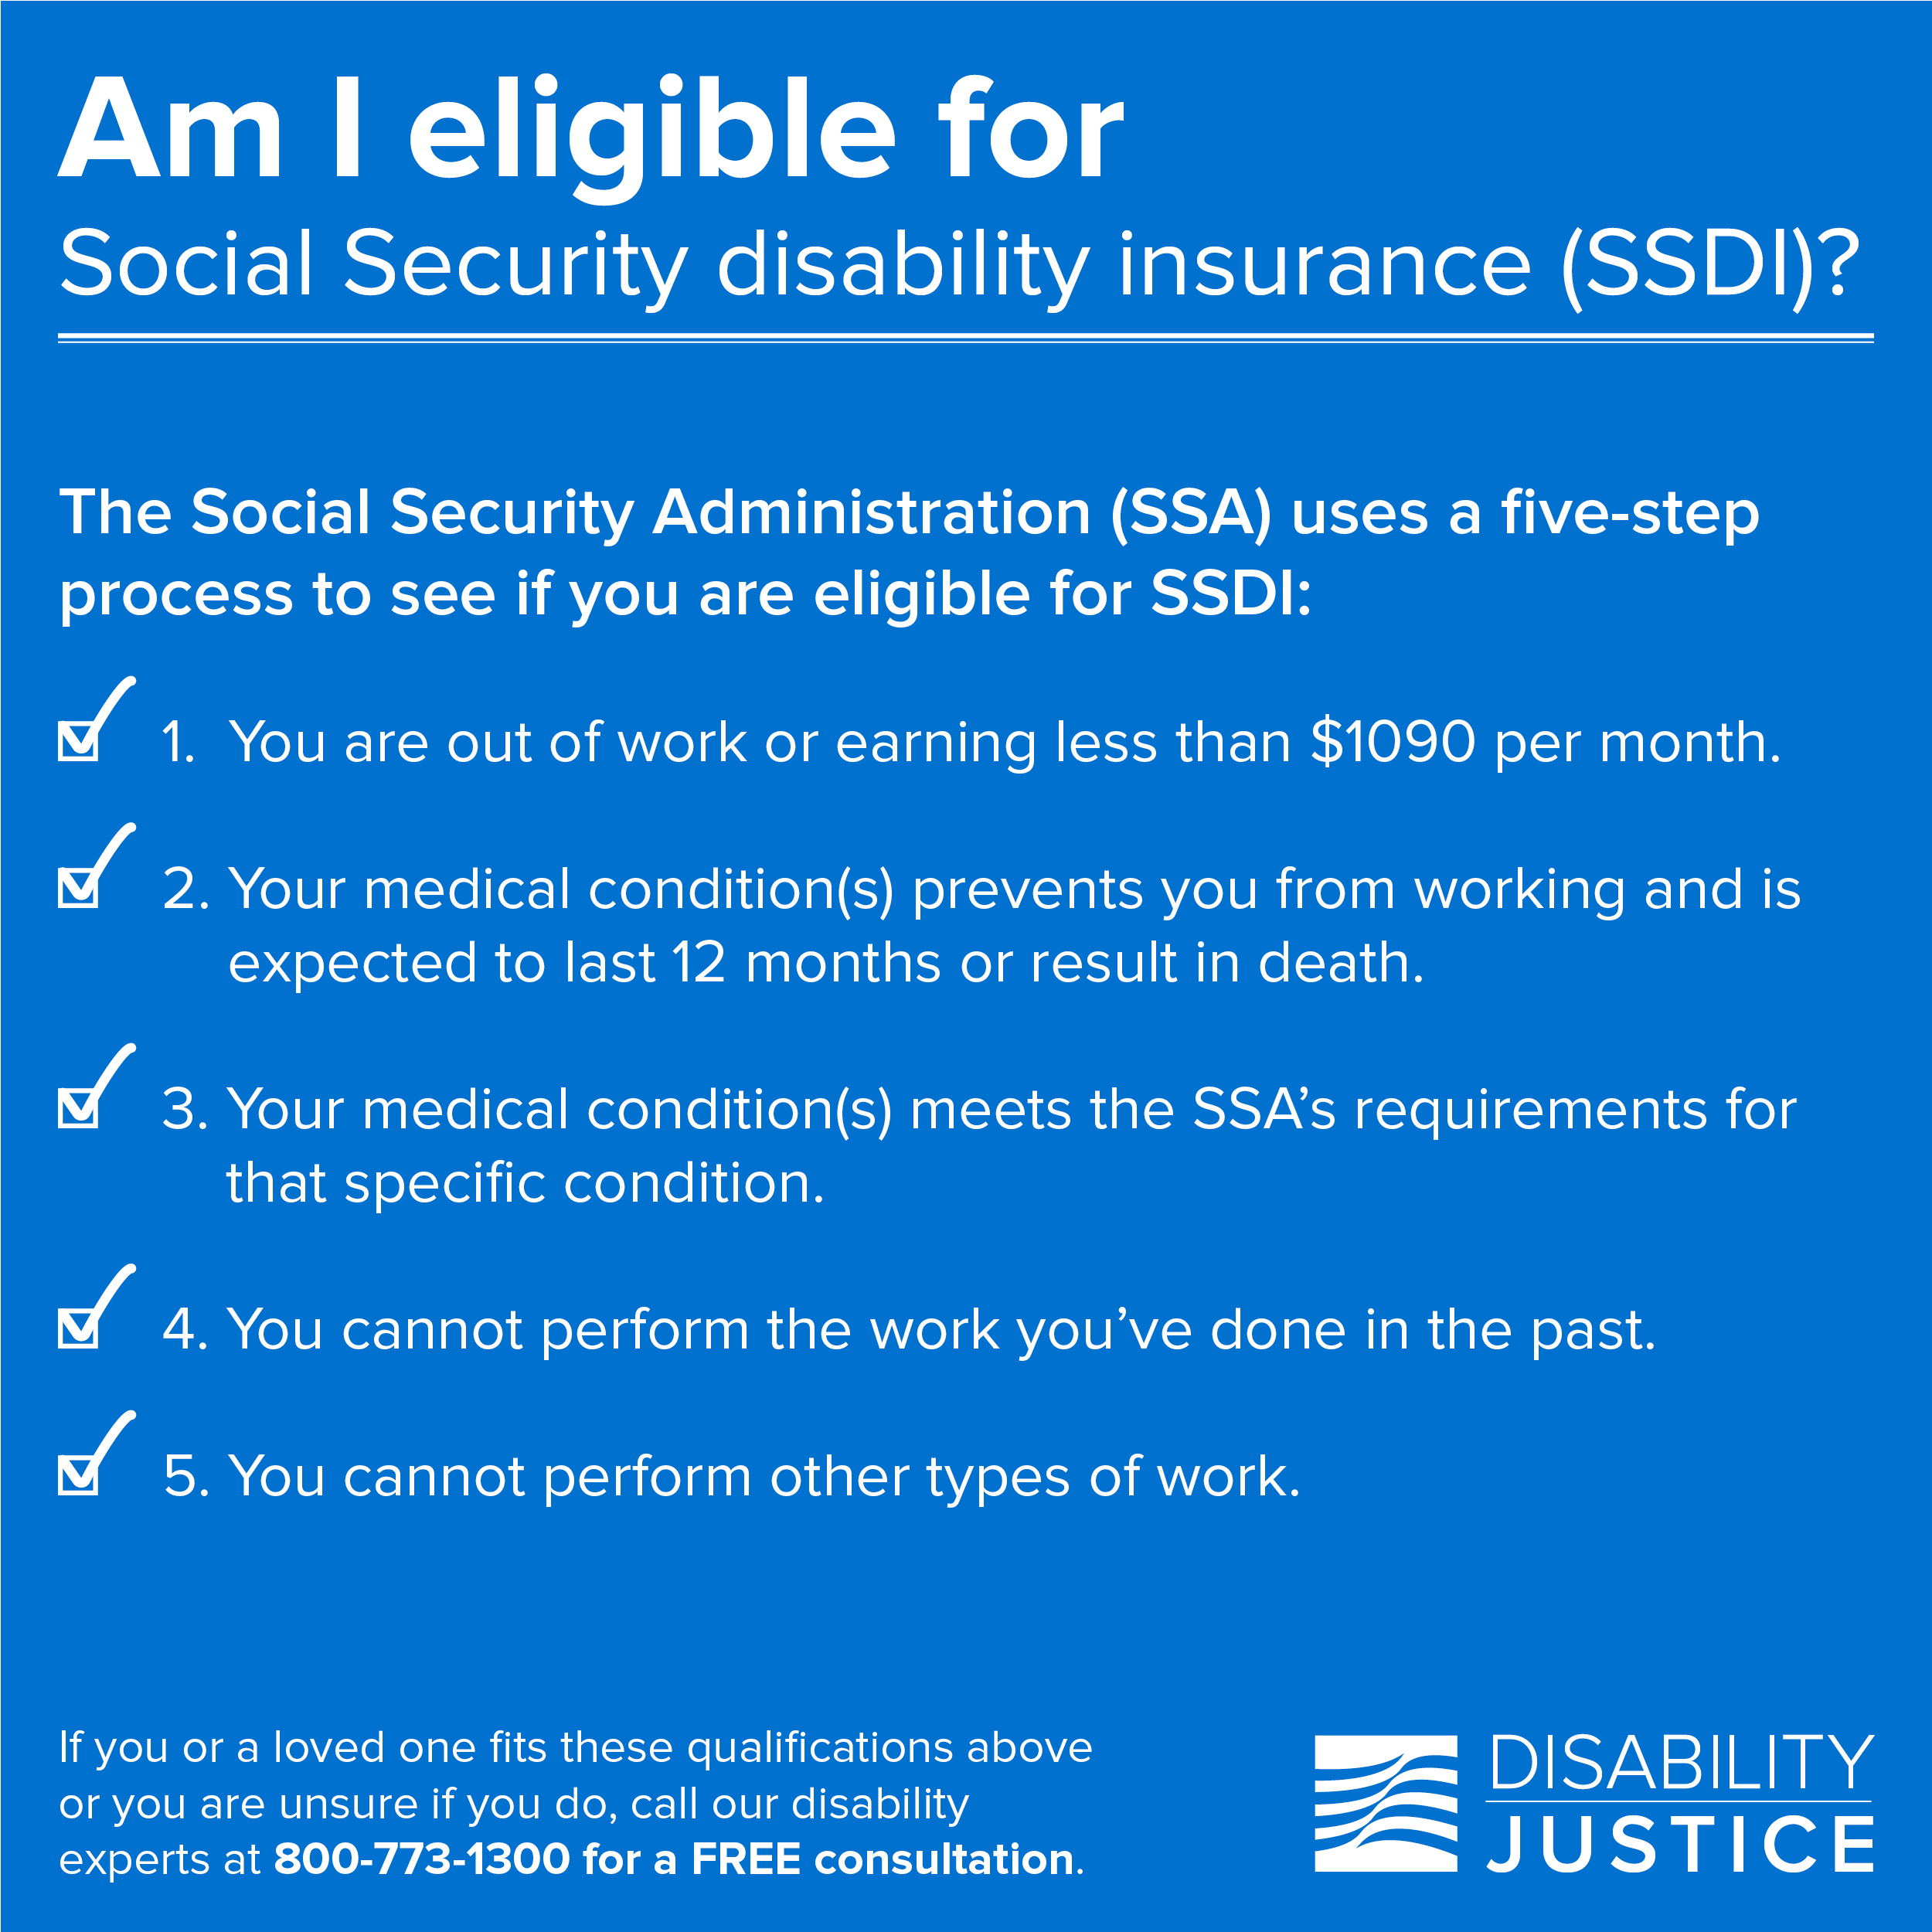 Are you eligible for Social Security disability insurance